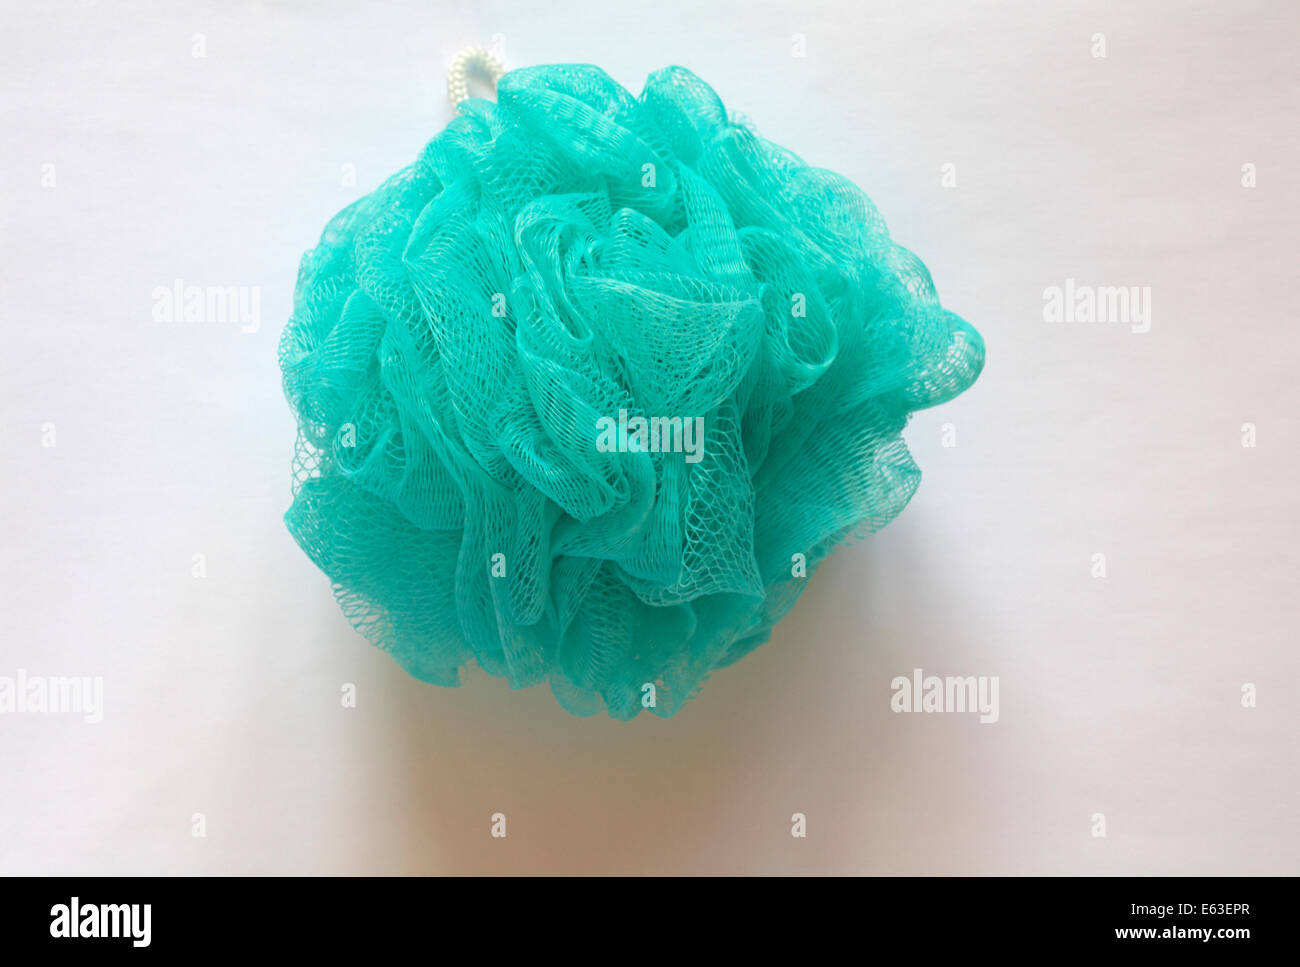 turquoise blue green body mop for bathing set on white background - Stock Image